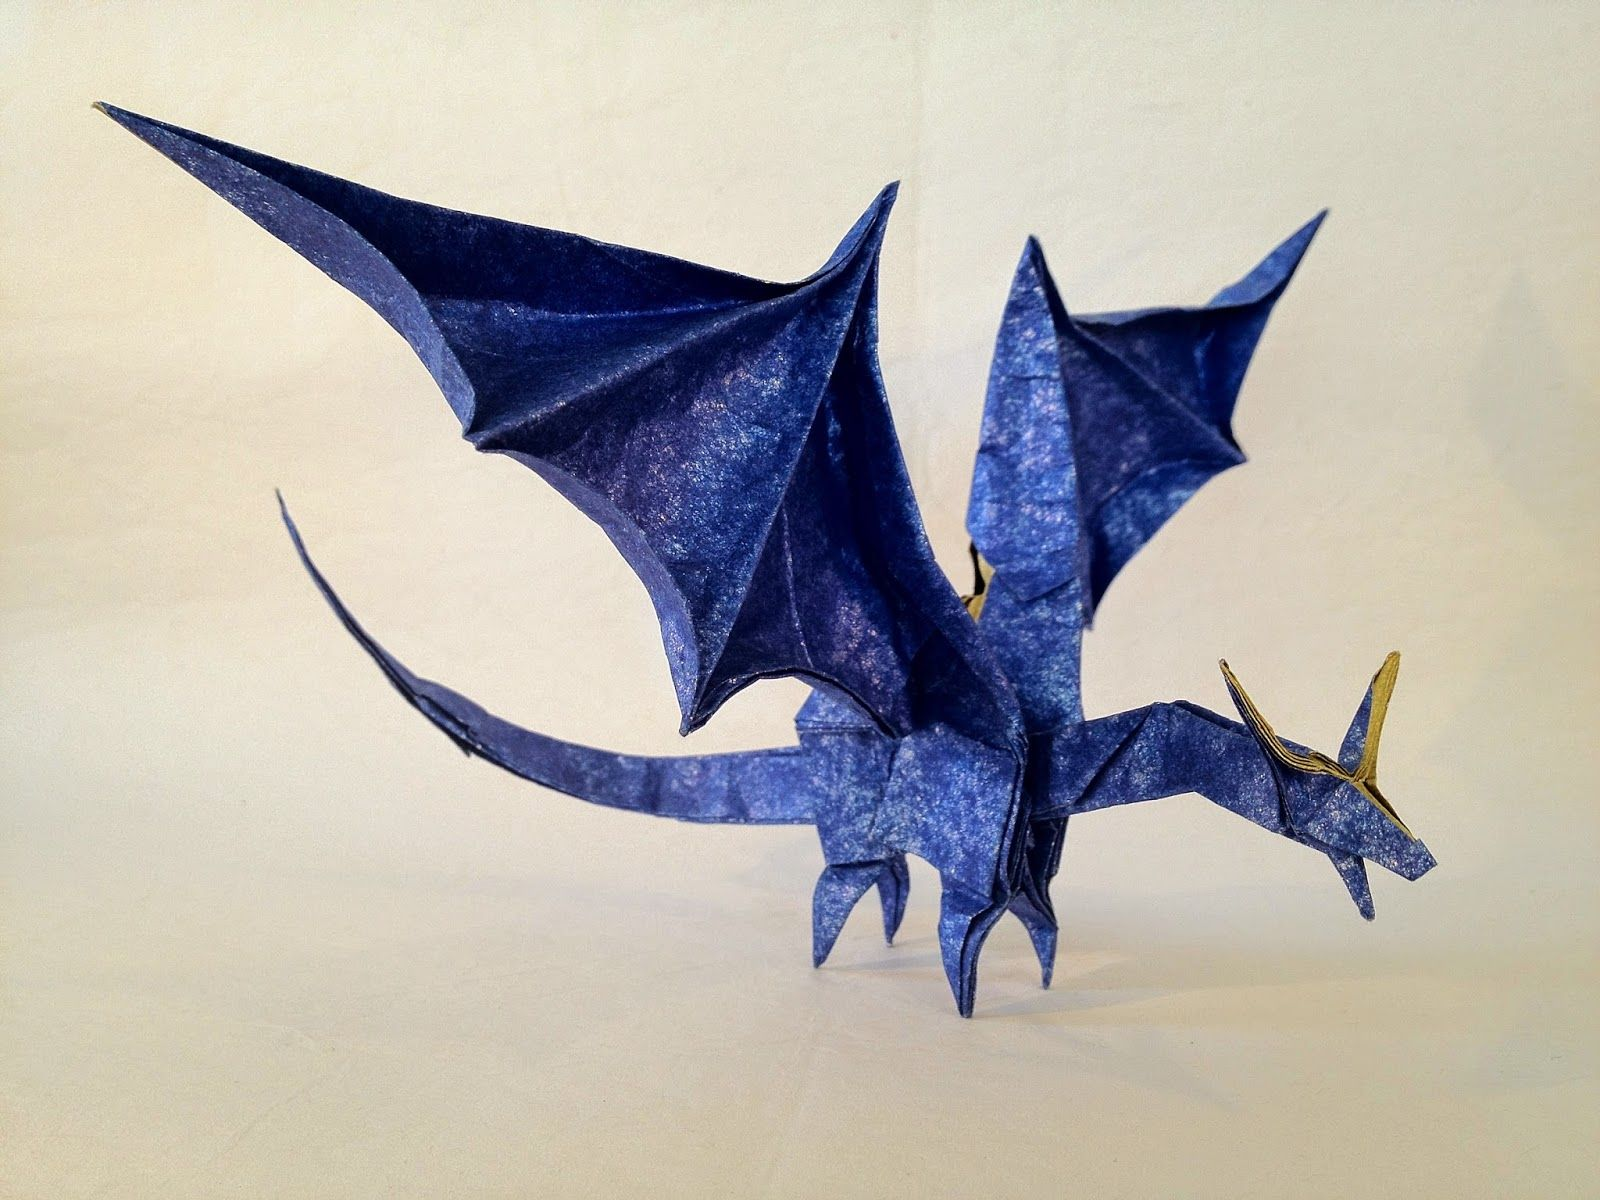 Easy Origami Dragon Instructions For Kids L 7a37264b4e3cfea6 1600x1200